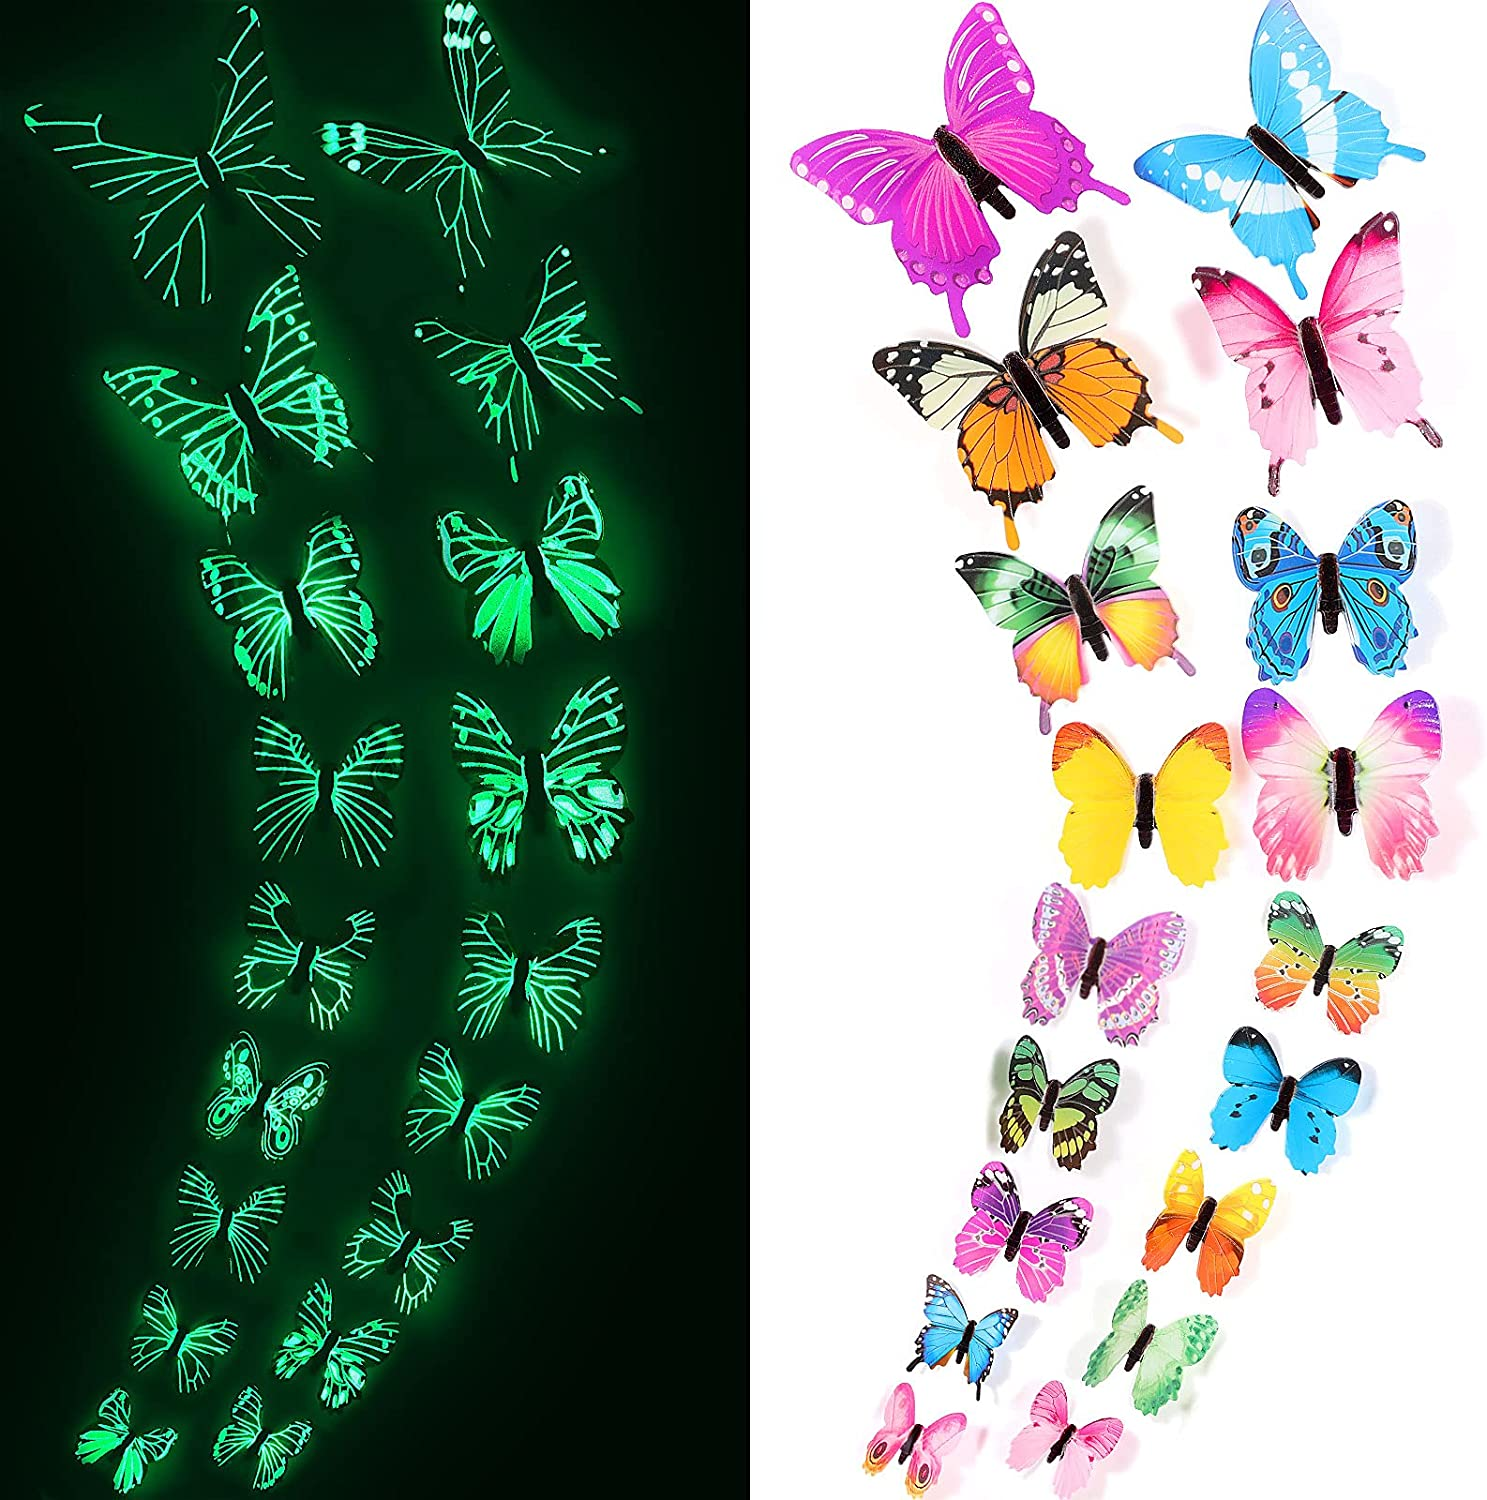 120 Pieces Butterfly Decals Glow Butterfly Stickers 3D Butterfly Sticker for Ceiling or Wall Decor Luminous 3D Butterfly Wall Sticker for Kid Bedroom Nursery Living Room Luminous Butterfly Home Garden